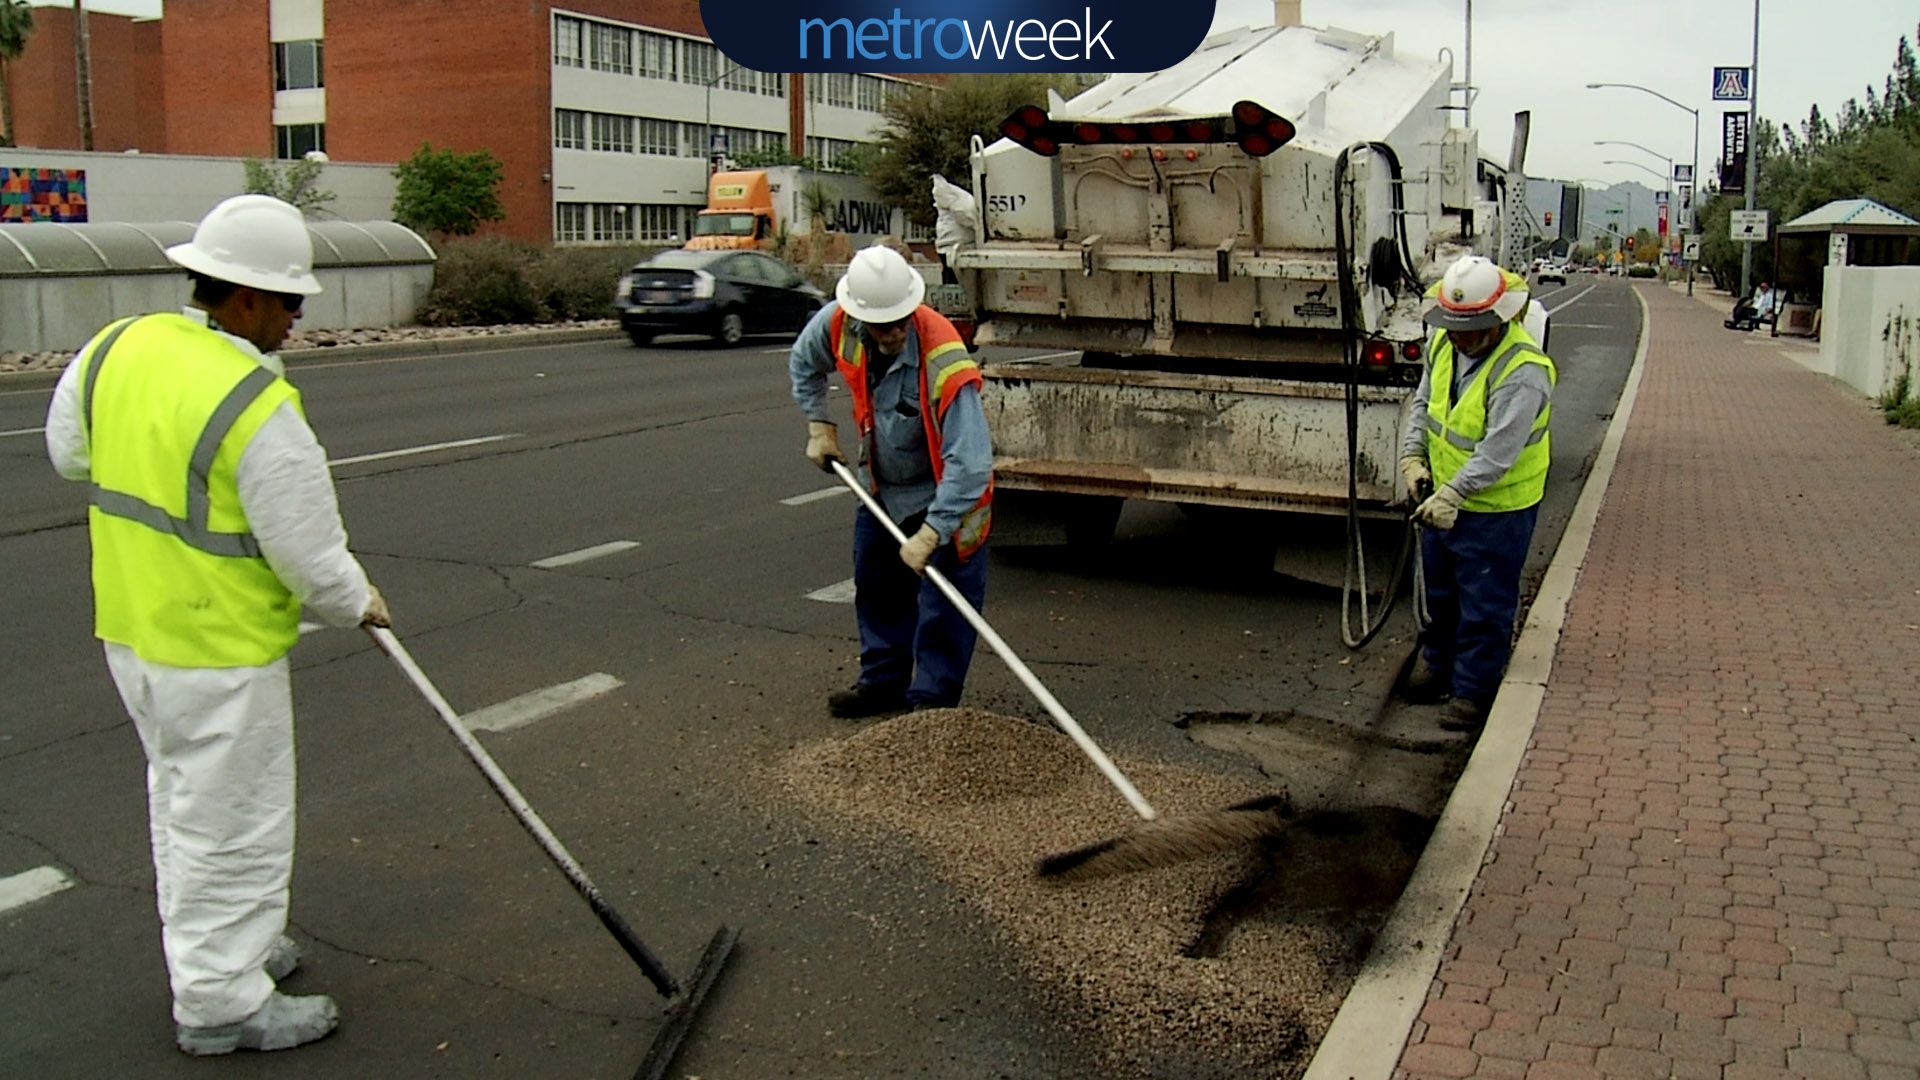 Workers repair a pothole.